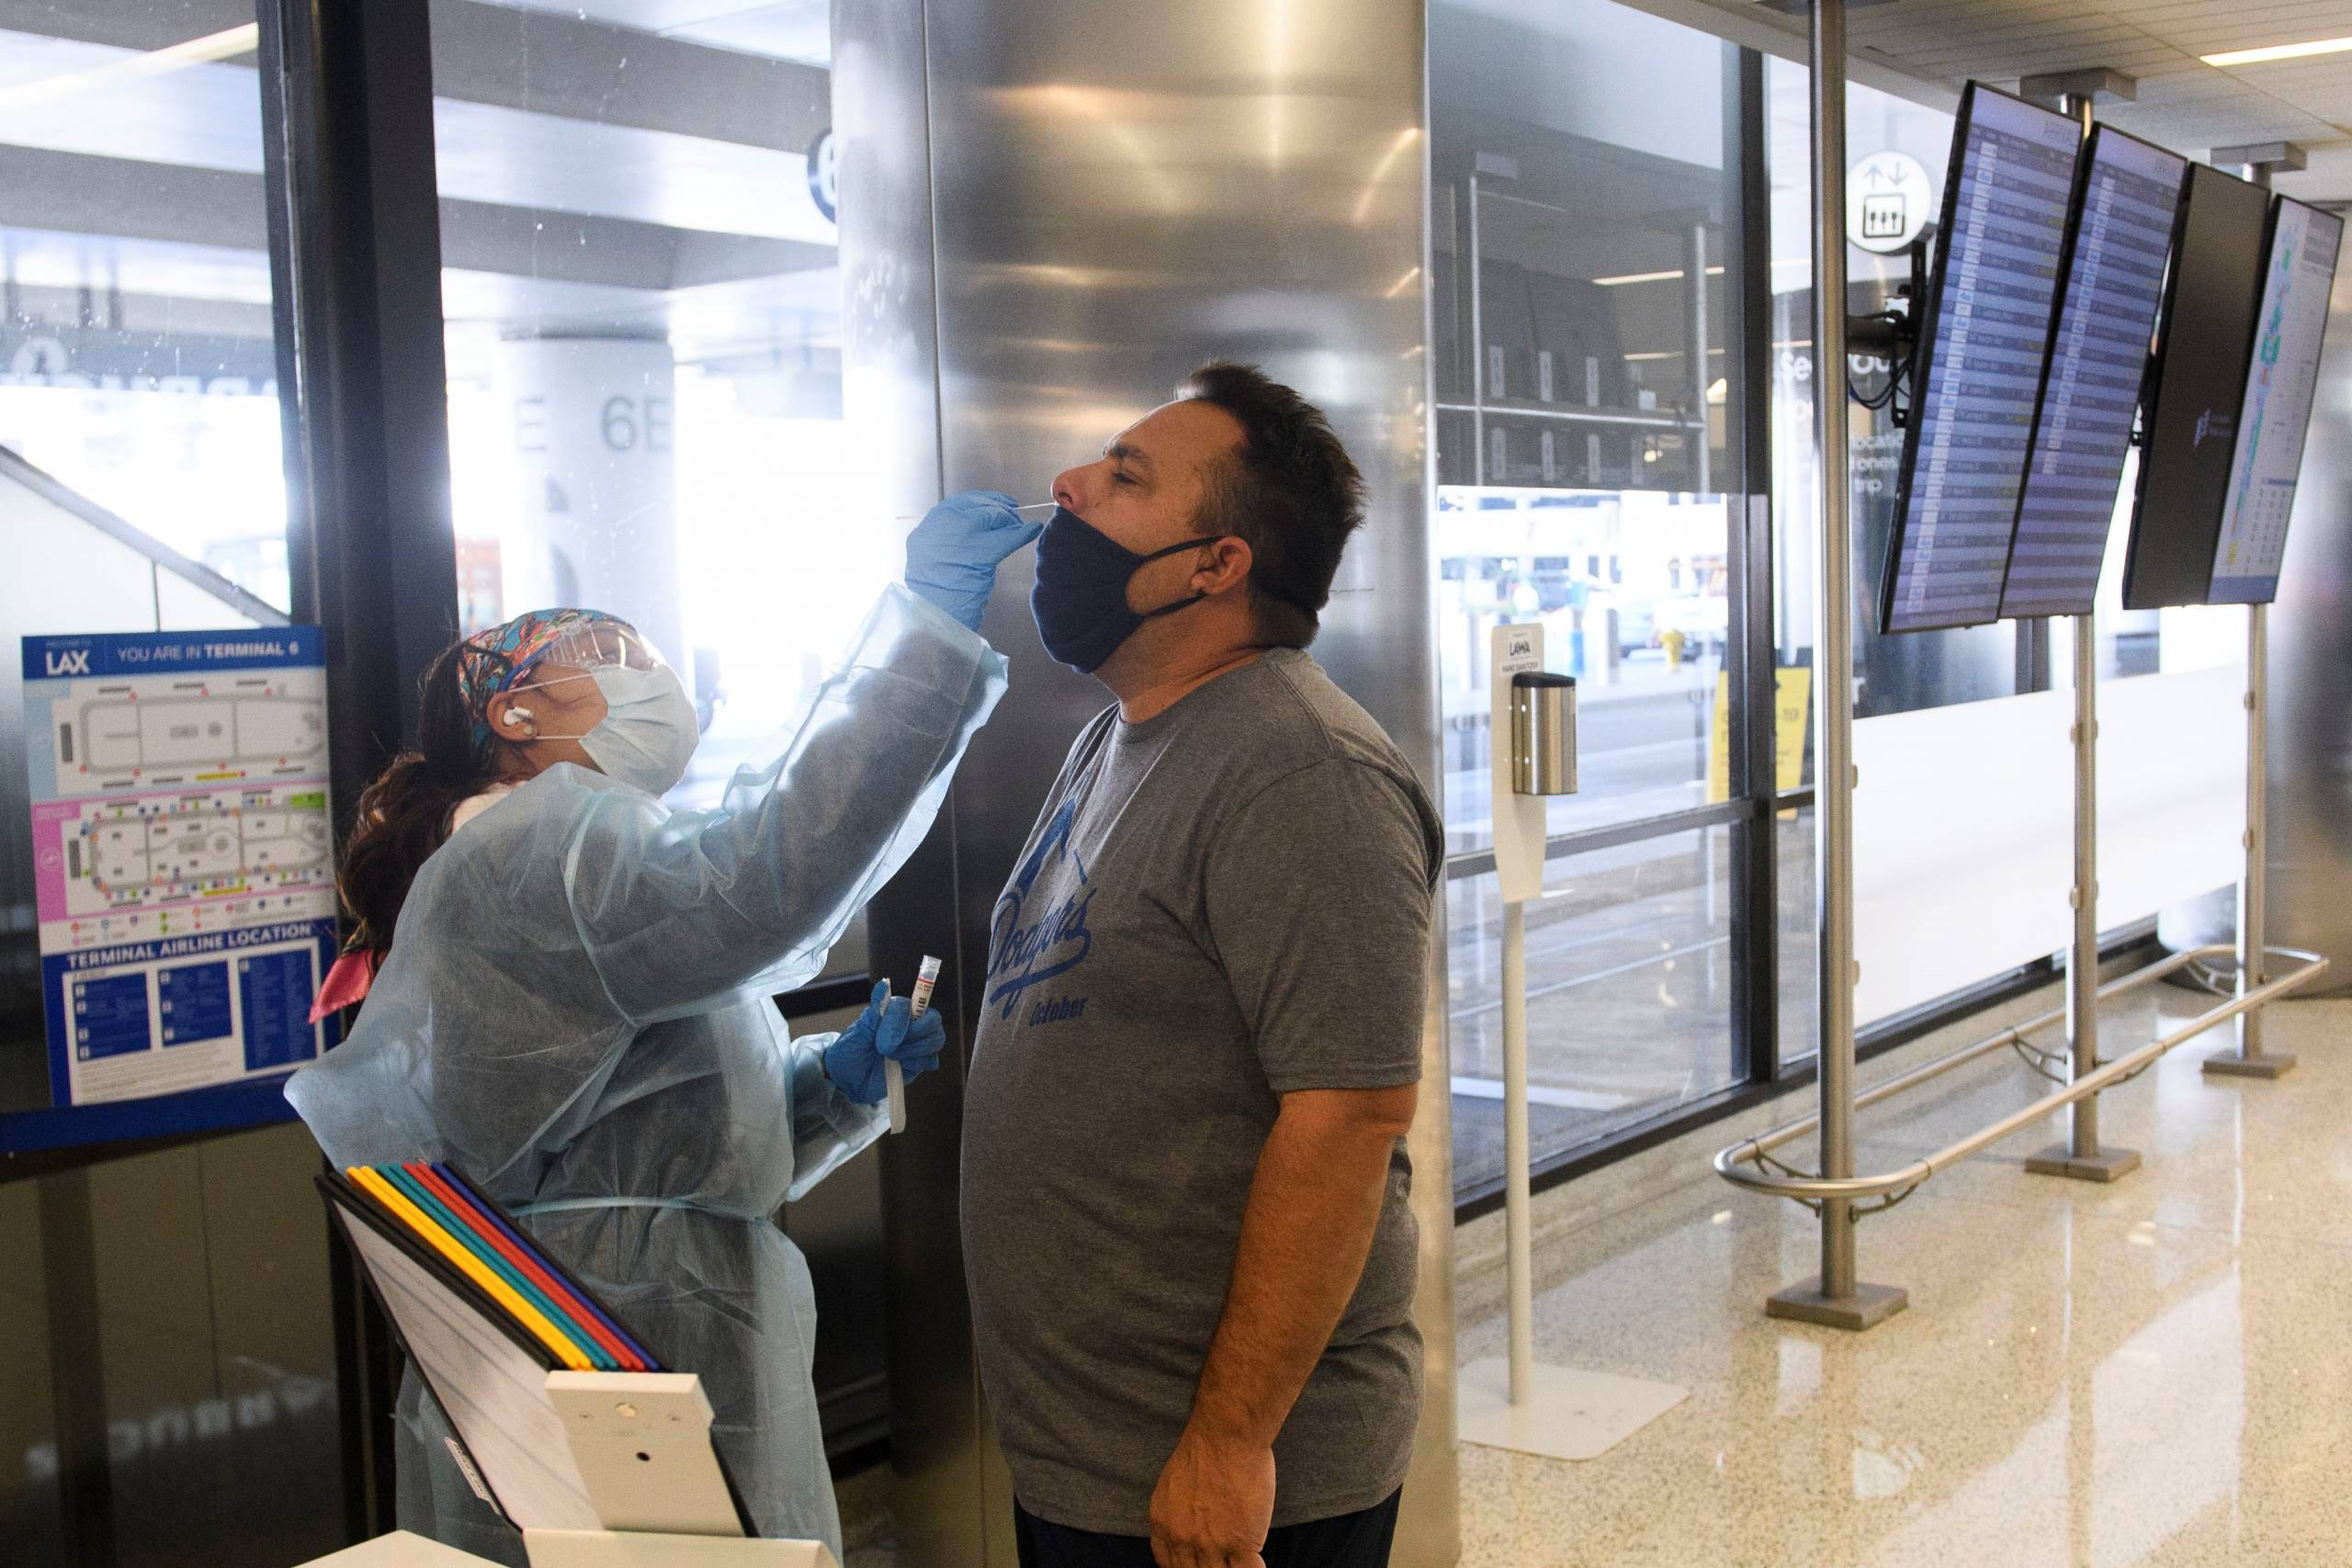 A traveler receives an in-airport Covid-19 nasal swab test a day before his flight to Hawaii at Los Angeles International Airport (LAX) in Los Angeles on Nov. 18, 2020.